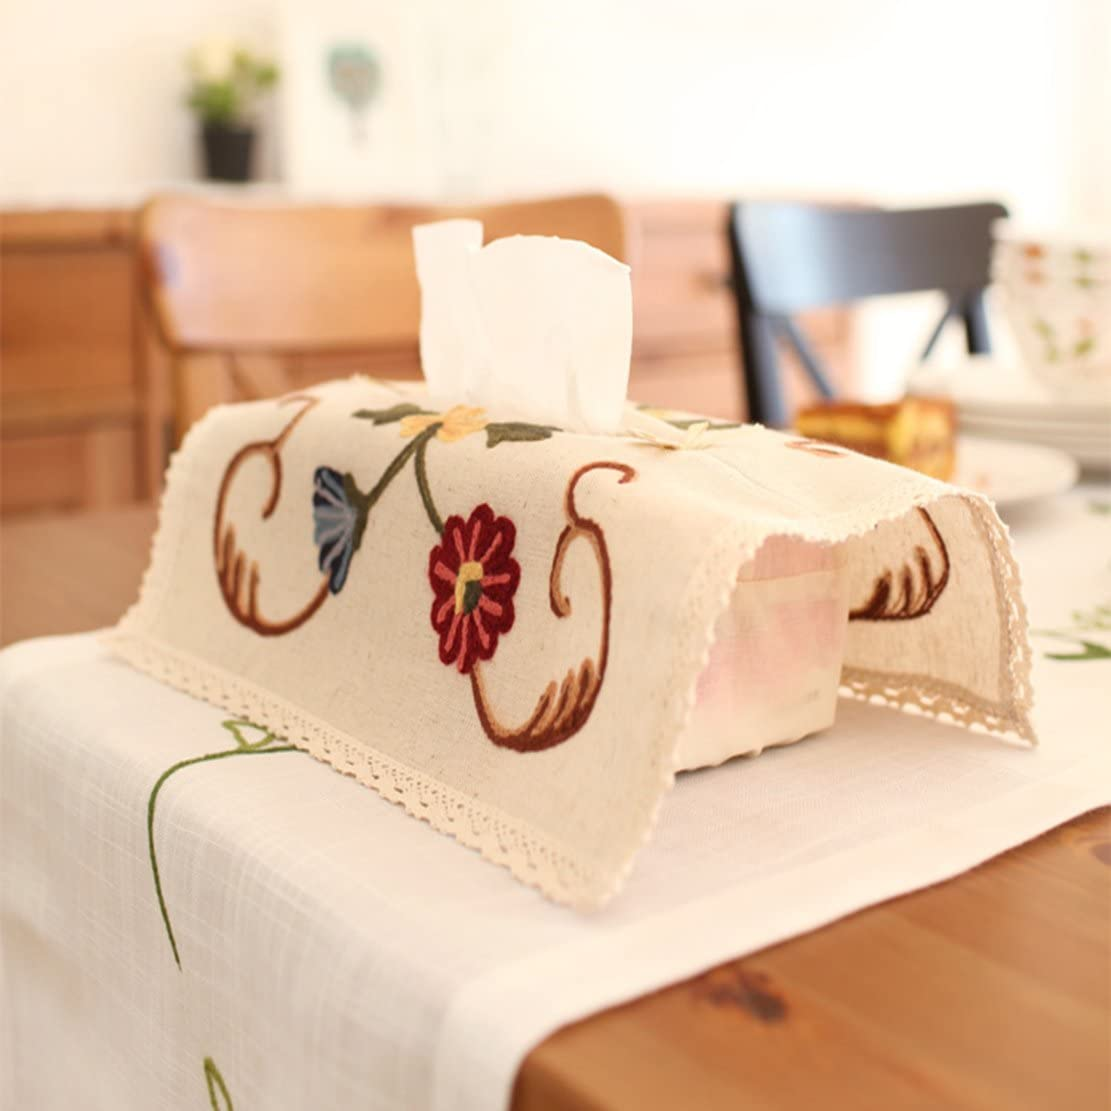 TaroHome Flowers Embroidered Linen Cotton Tissue Box Cover